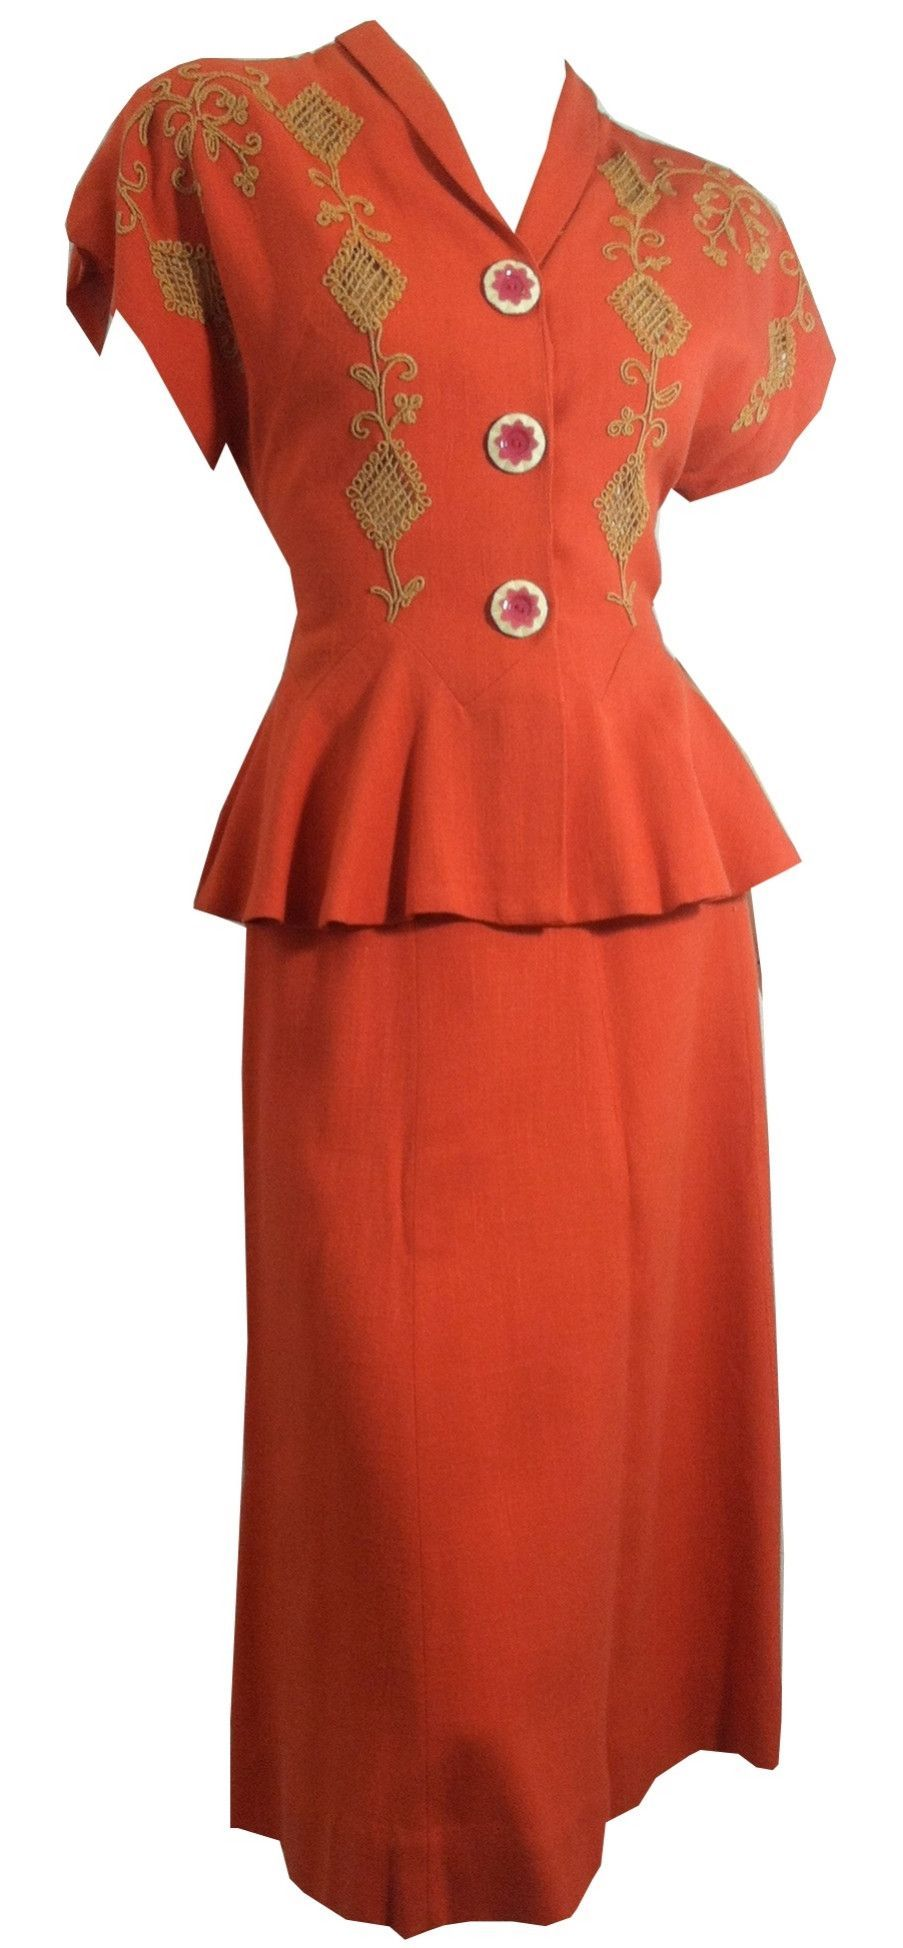 Perky Summer Coral 2 Piece Dress w/ Embroidery and Flower Buttons circa 1940s